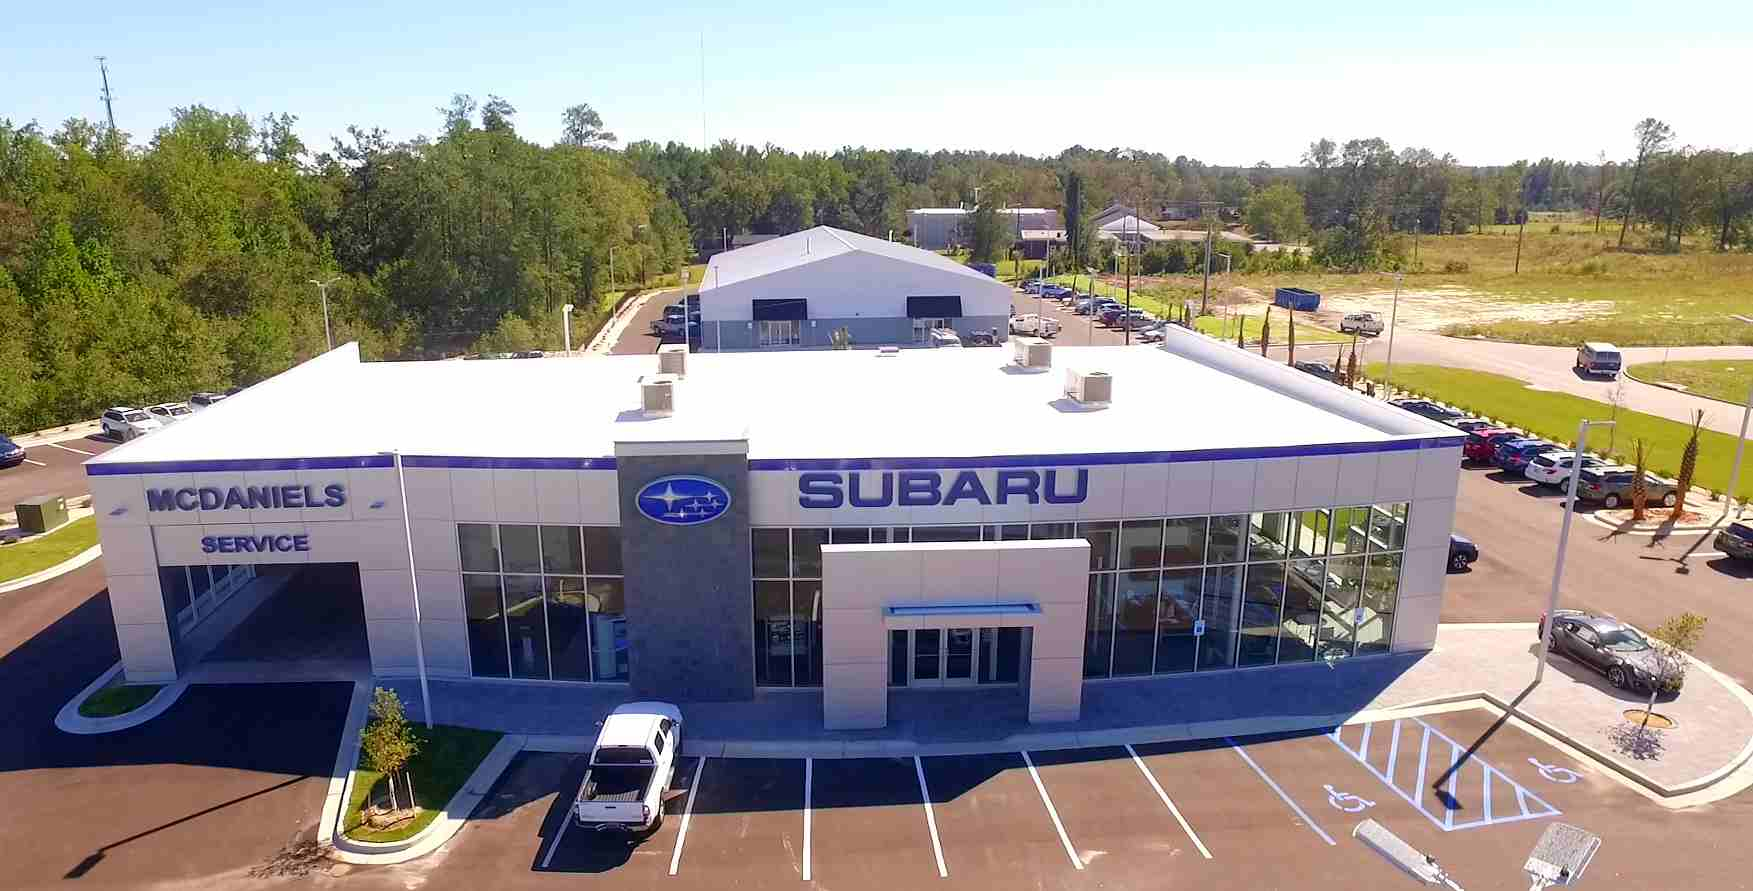 about mcdaniels subaru of columbia south carolina new used subaru dealer serving west. Black Bedroom Furniture Sets. Home Design Ideas